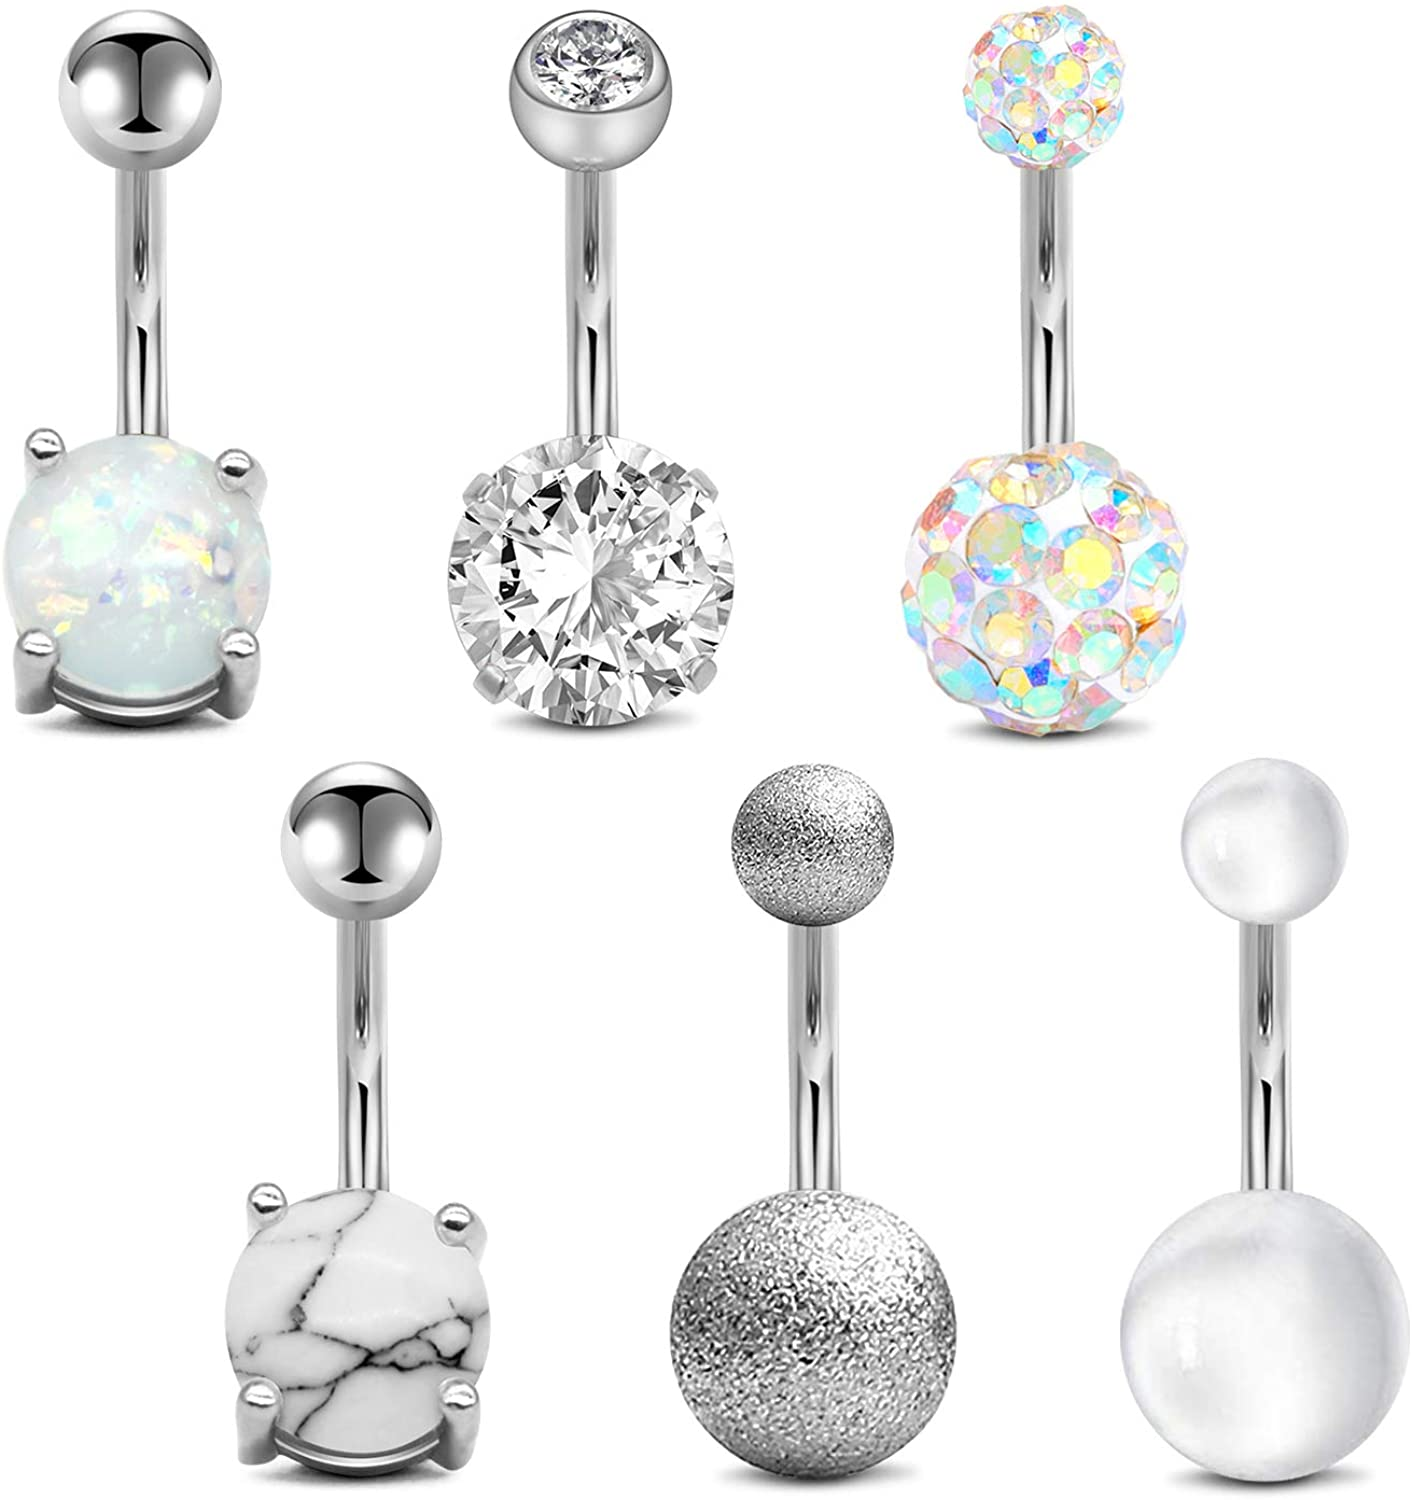 Belly Button Jewelry,belly ring Navel Piercing Ring Piercing,Belly Ring Navel Jewelry Belly ring